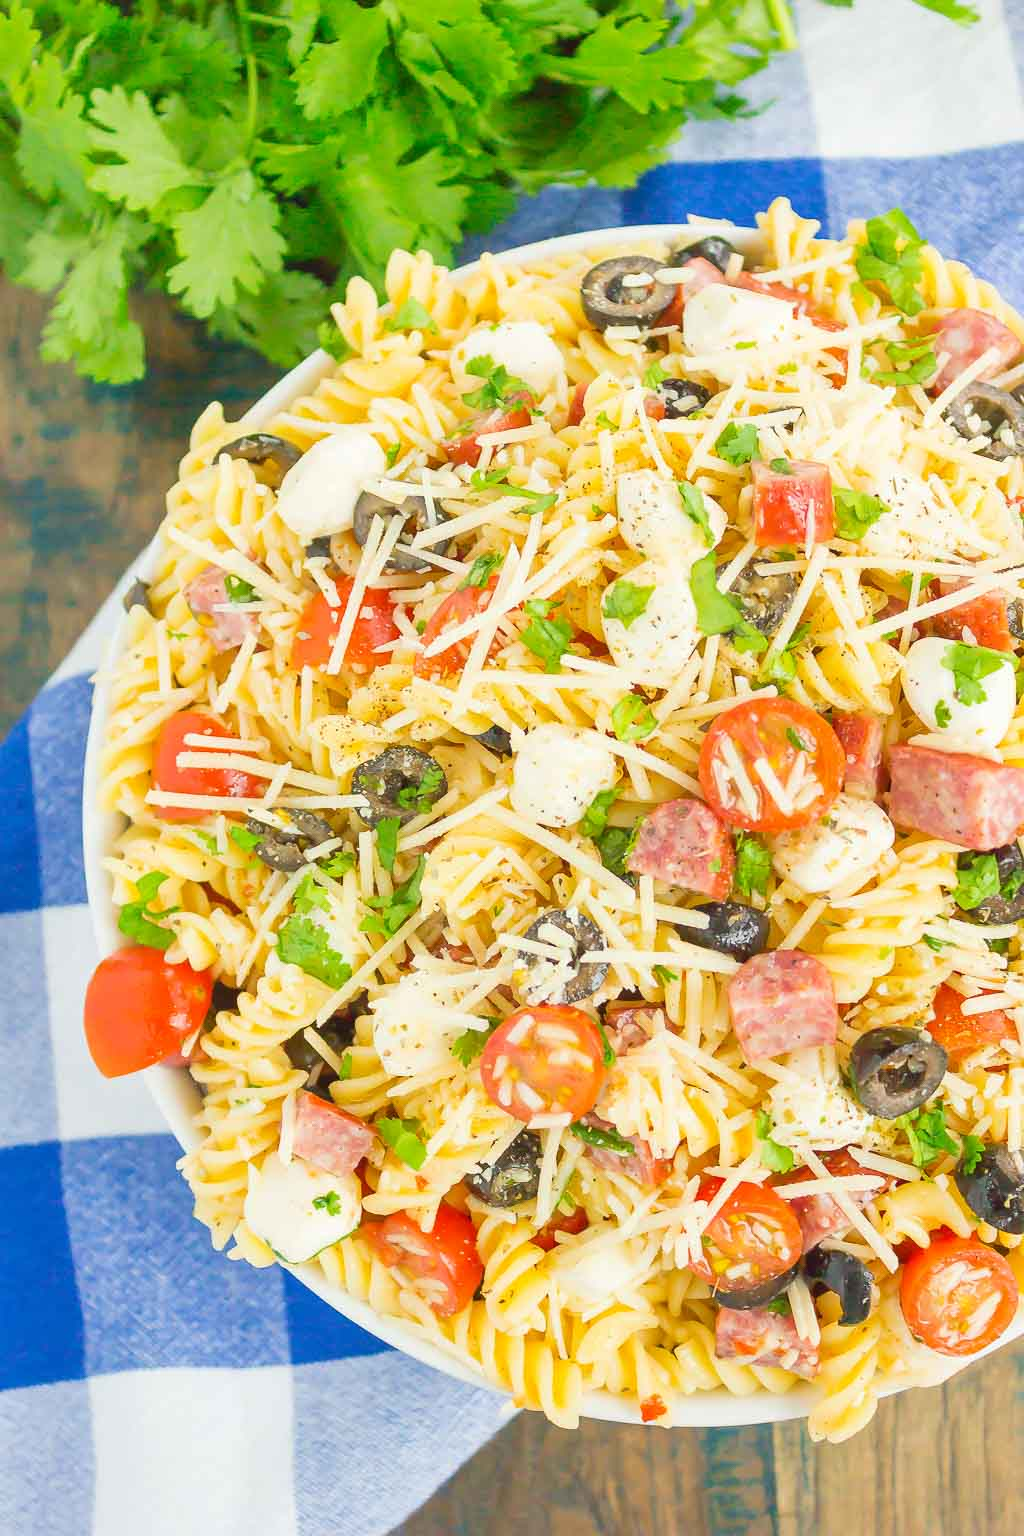 Easy Italian Pasta Salad is fast, fresh, and loaded with flavor. This zesty salad is packed with classic favorites, like salami, mozzarella pearls, black olives, cherry tomatoes and then tossed in a simple Italian dressing. Easy to make and ready in less than 30 minutes, this salad is perfect to serve for those summer parties and get-togethers! #pastasalad #italianpastasalad